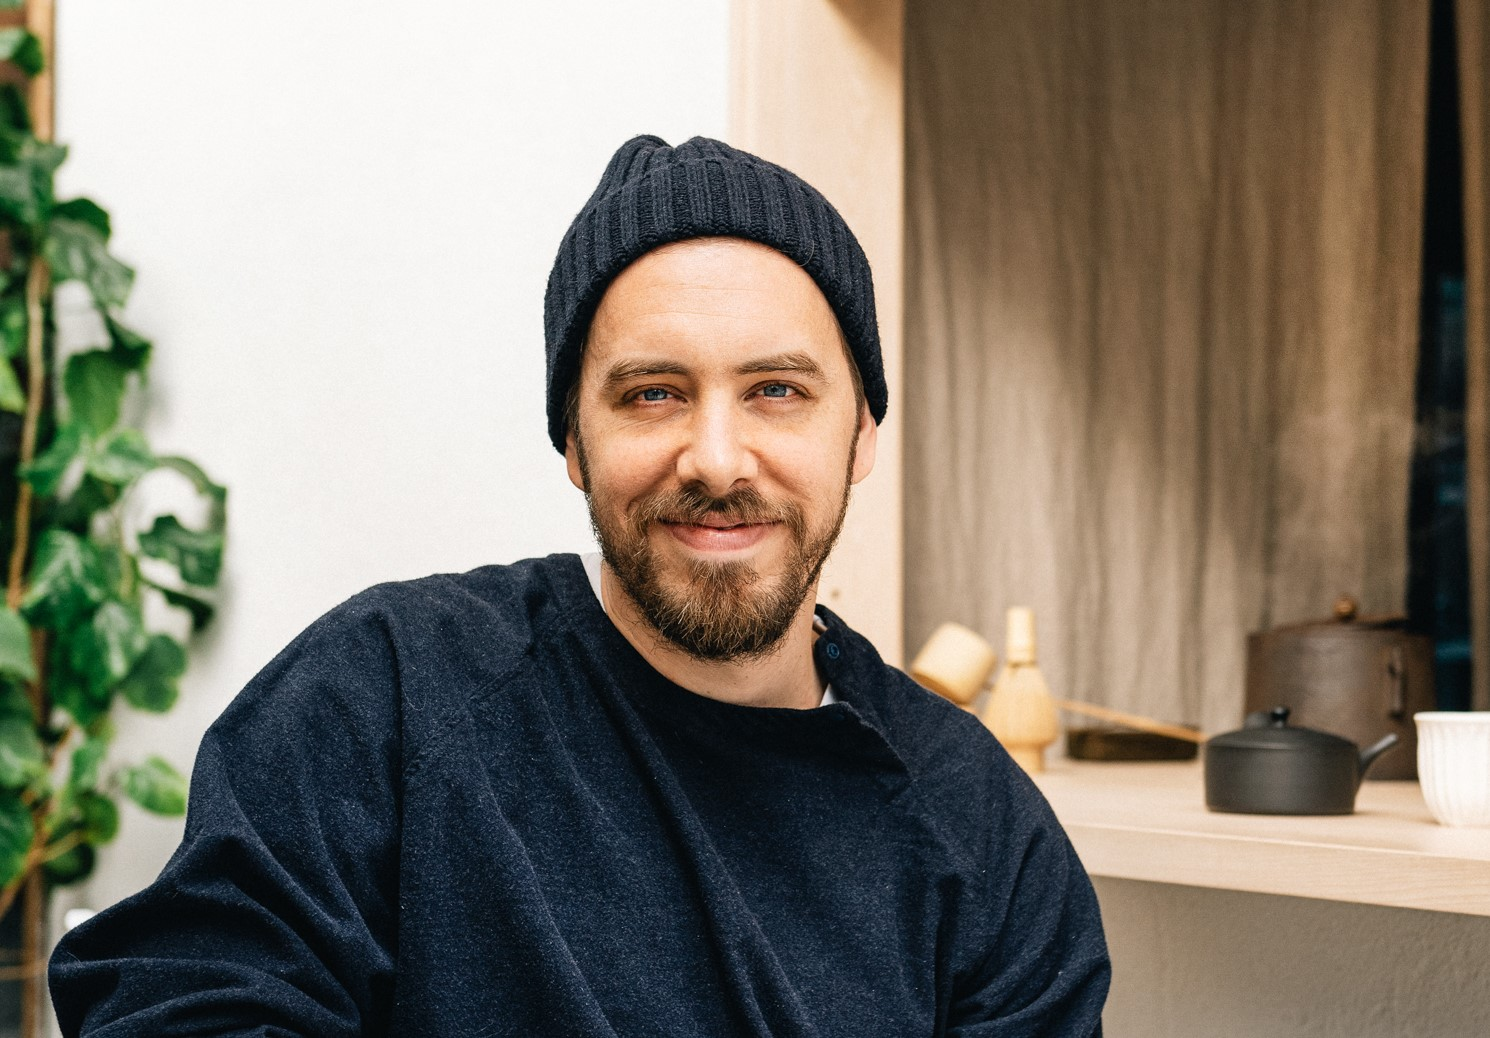 Caucasian male sits in a chair outdoors. He has brunette facial hair, and is wearing a black beanie and a black MUJI pullover shirt.